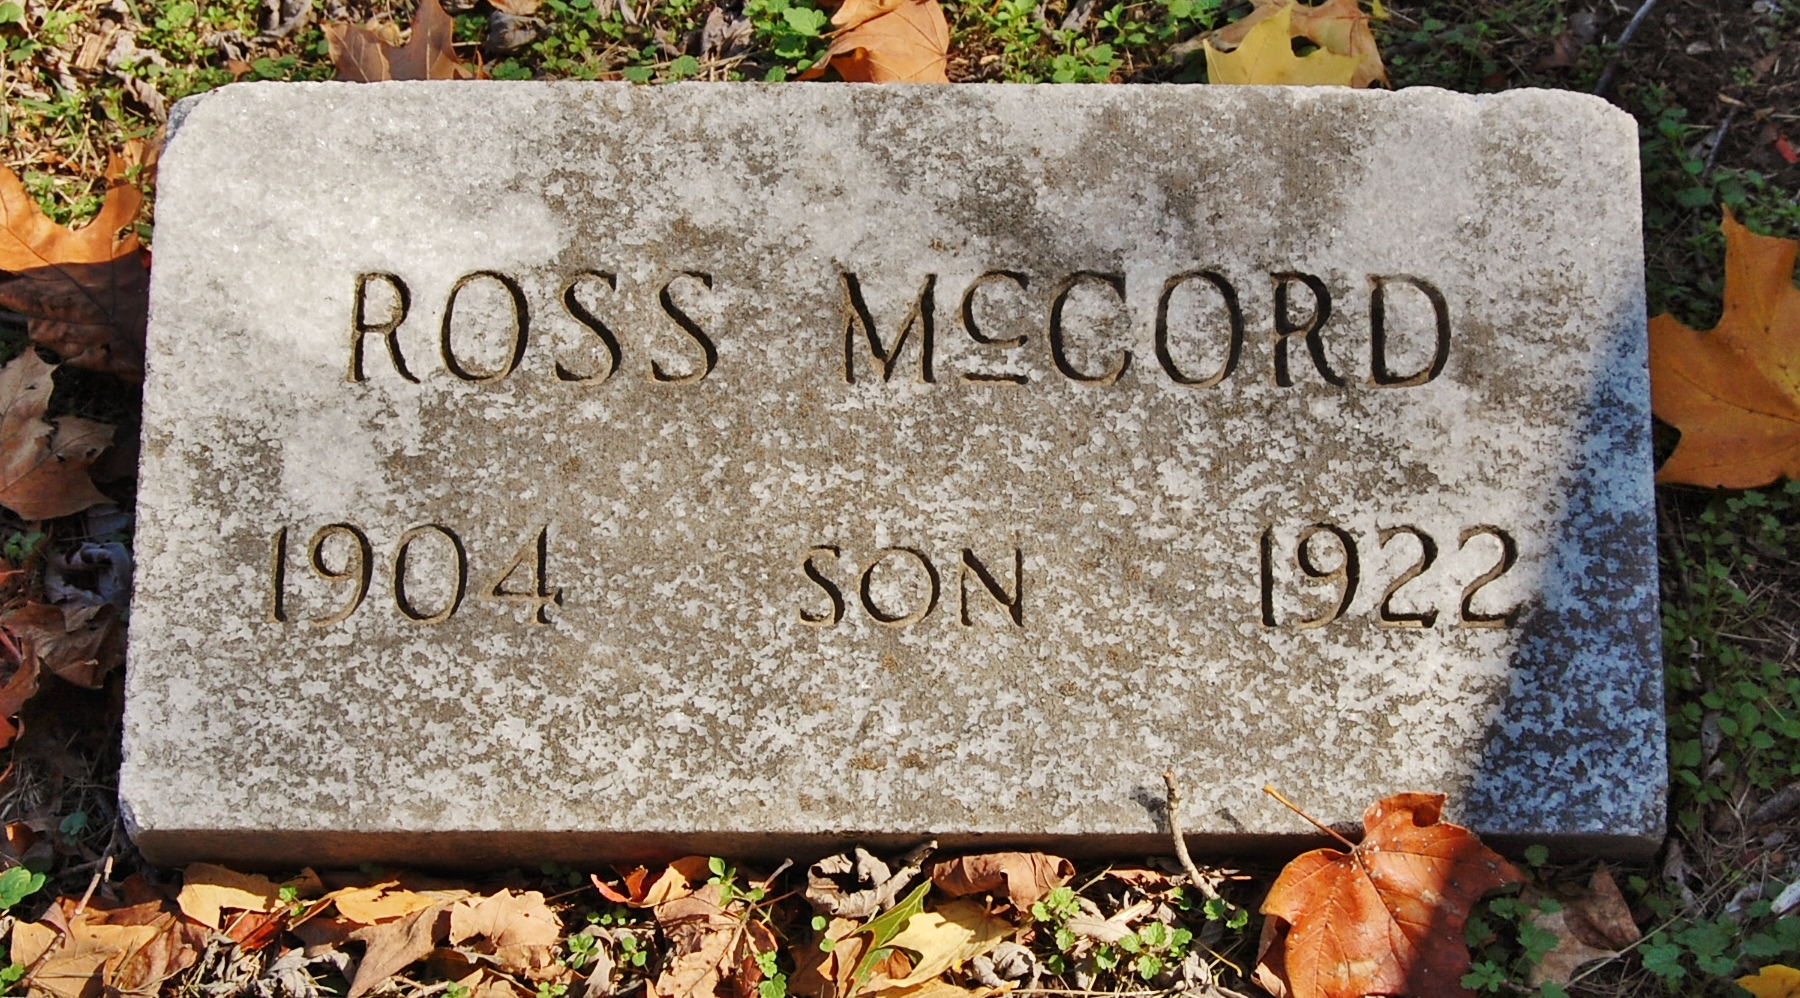 mccord foot stone